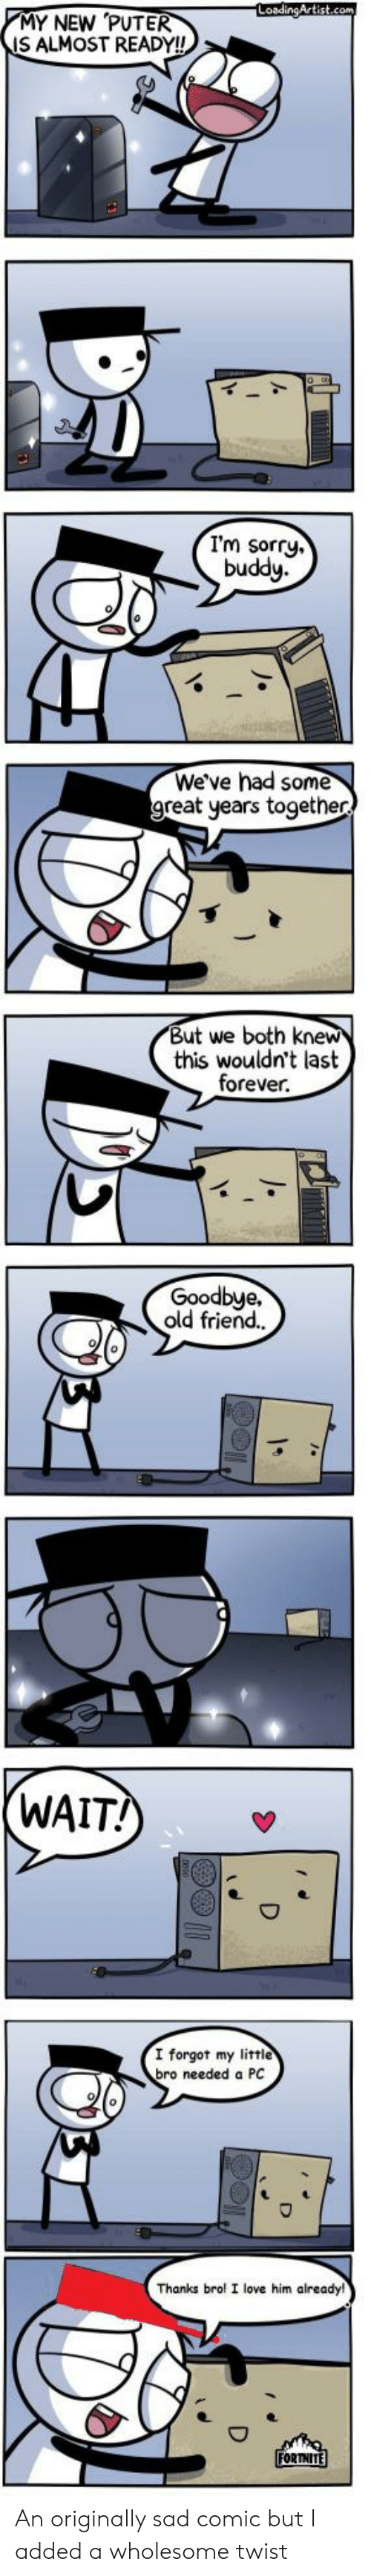 old friend: LoadingArtist.com  MY NEW PUTER  IS ALMOST READY!!  I'm sorry.  buddy  We've had some  great years together  But we both knew  this wouldn't last  forever  Goodbye.  old friend.  (WAIT!  I forgot my littie  bro needed a PC  Thanks brol I love him already!  FORTNITE An originally sad comic but I added a wholesome twist